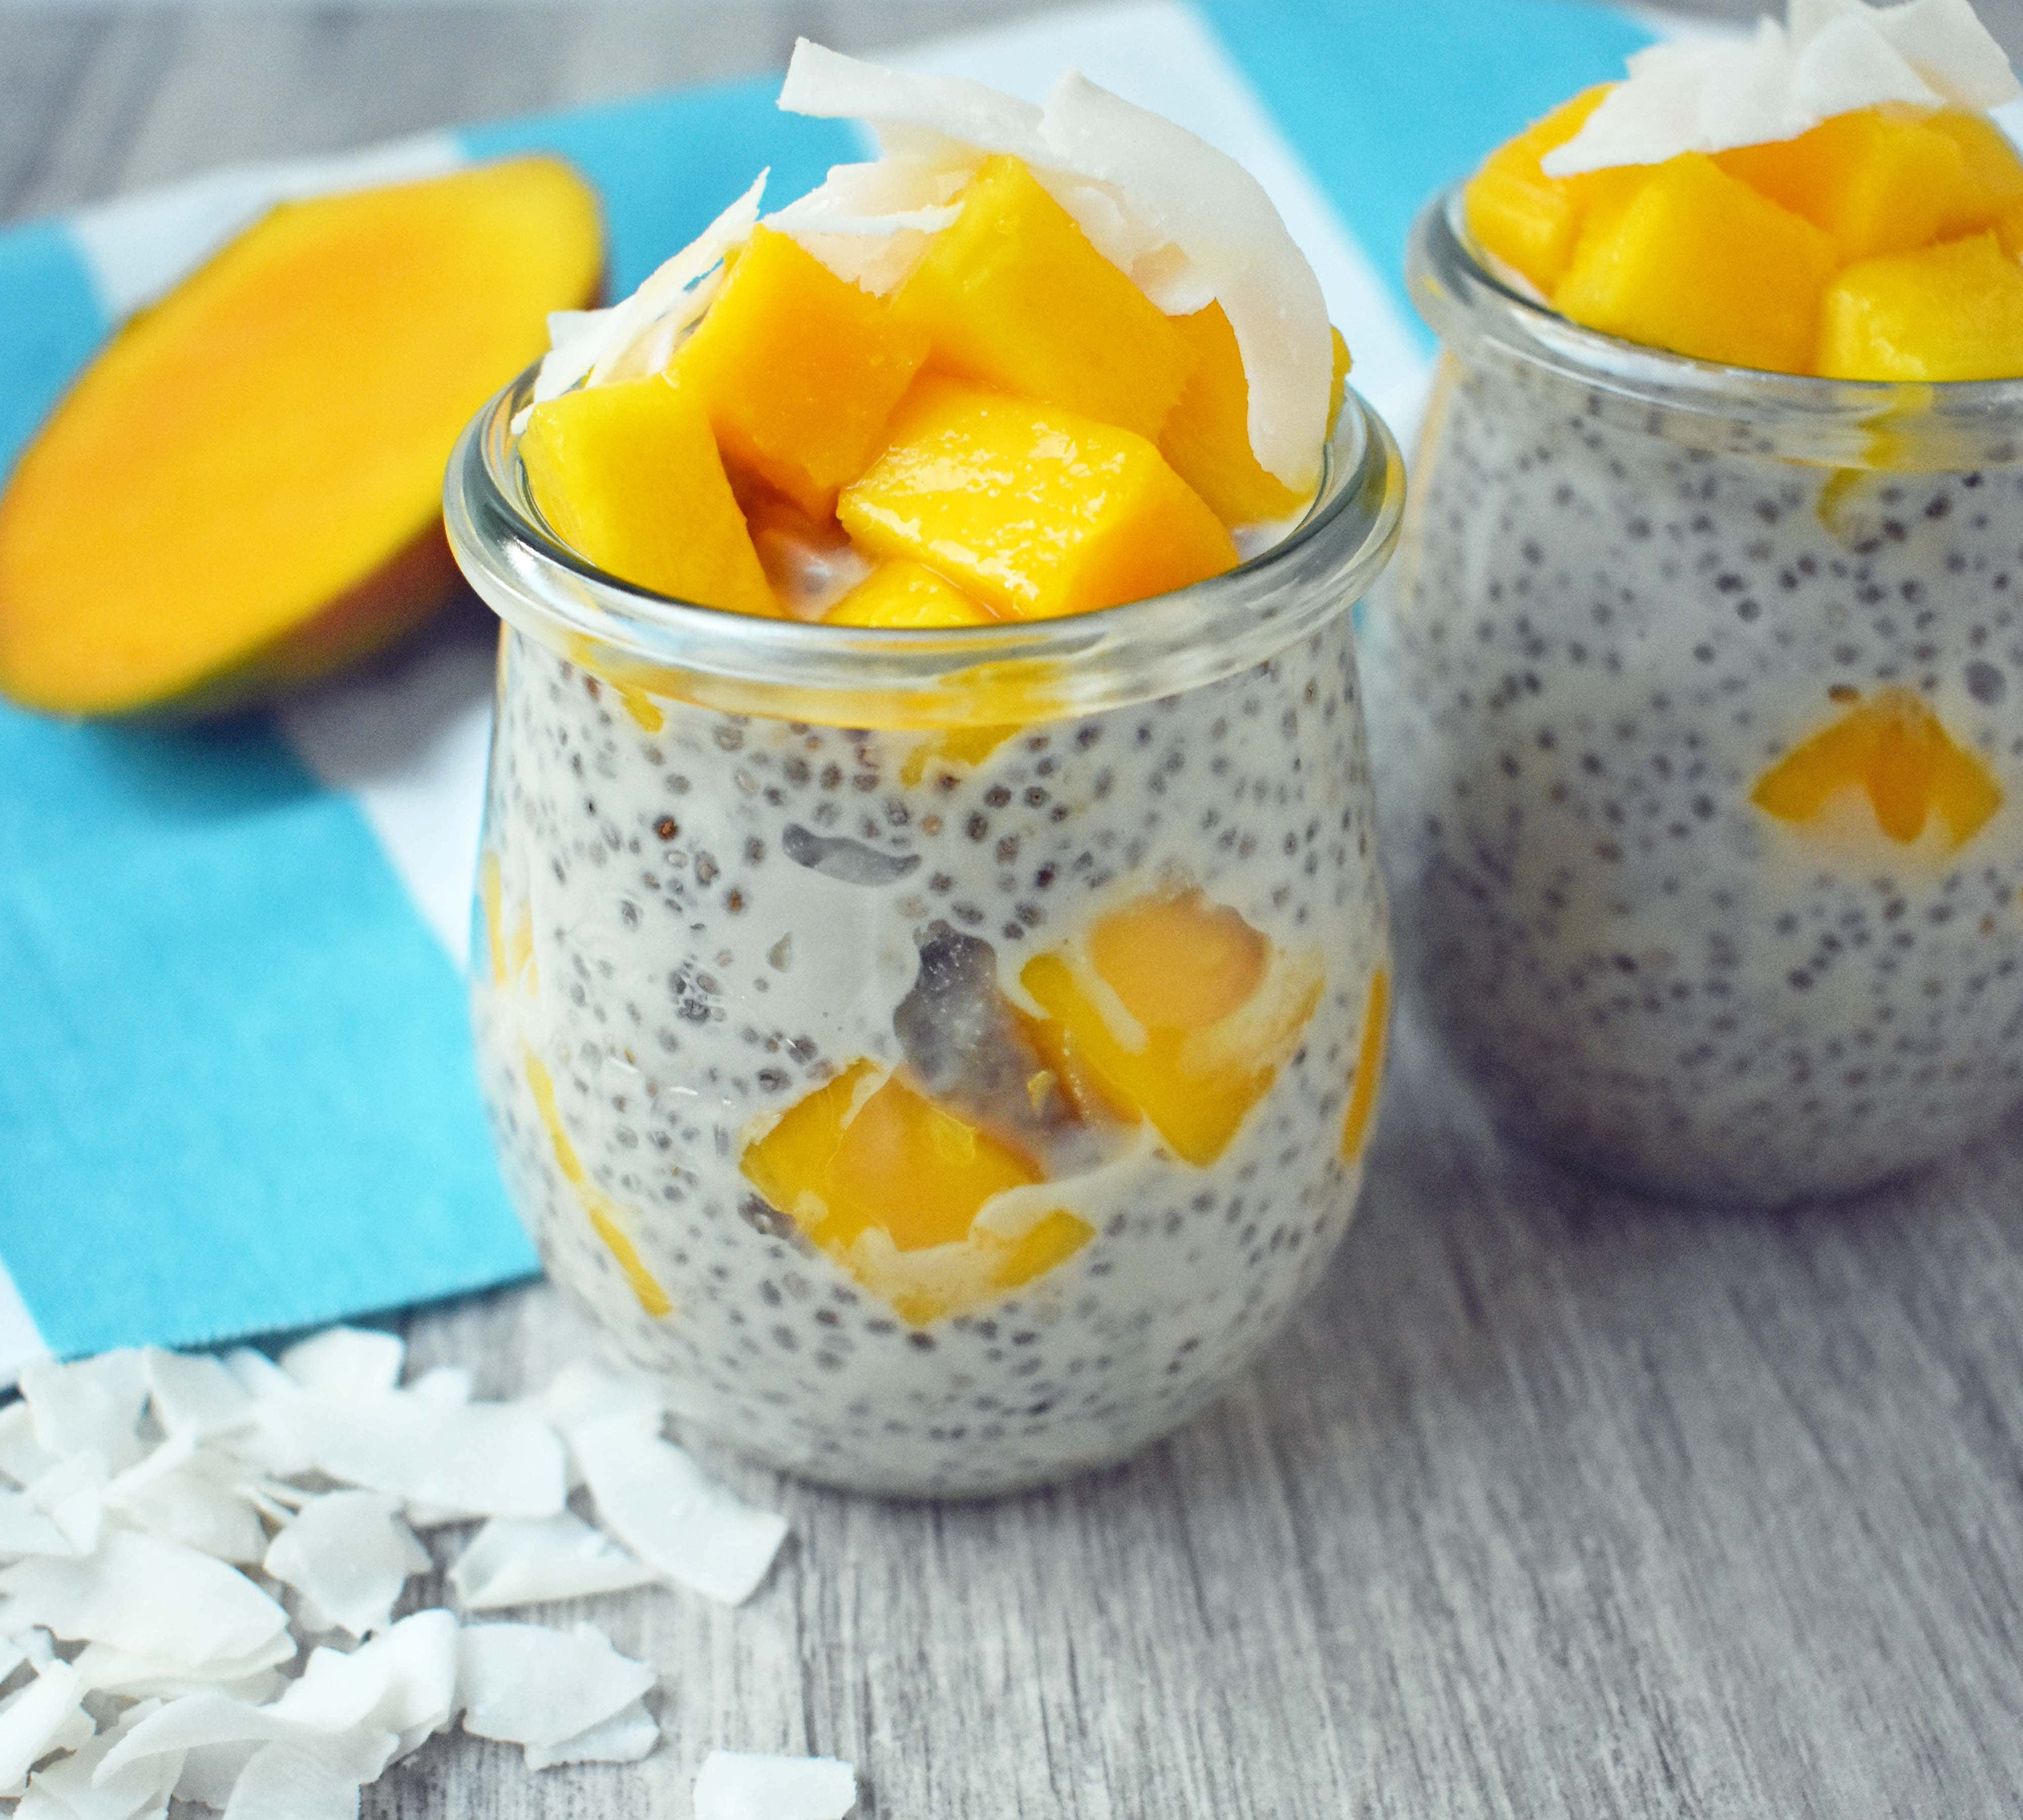 Coconut Mango Chia Pudding. A gluten-free, sugar-free, dairy-free dessert. Omega rich chia seeds soaked in coconut milk and sweetened with real maple syrup. Topped with unsweetned coconut flakes and fresh mango for a healthy tropical treat. www.modernhoney.com